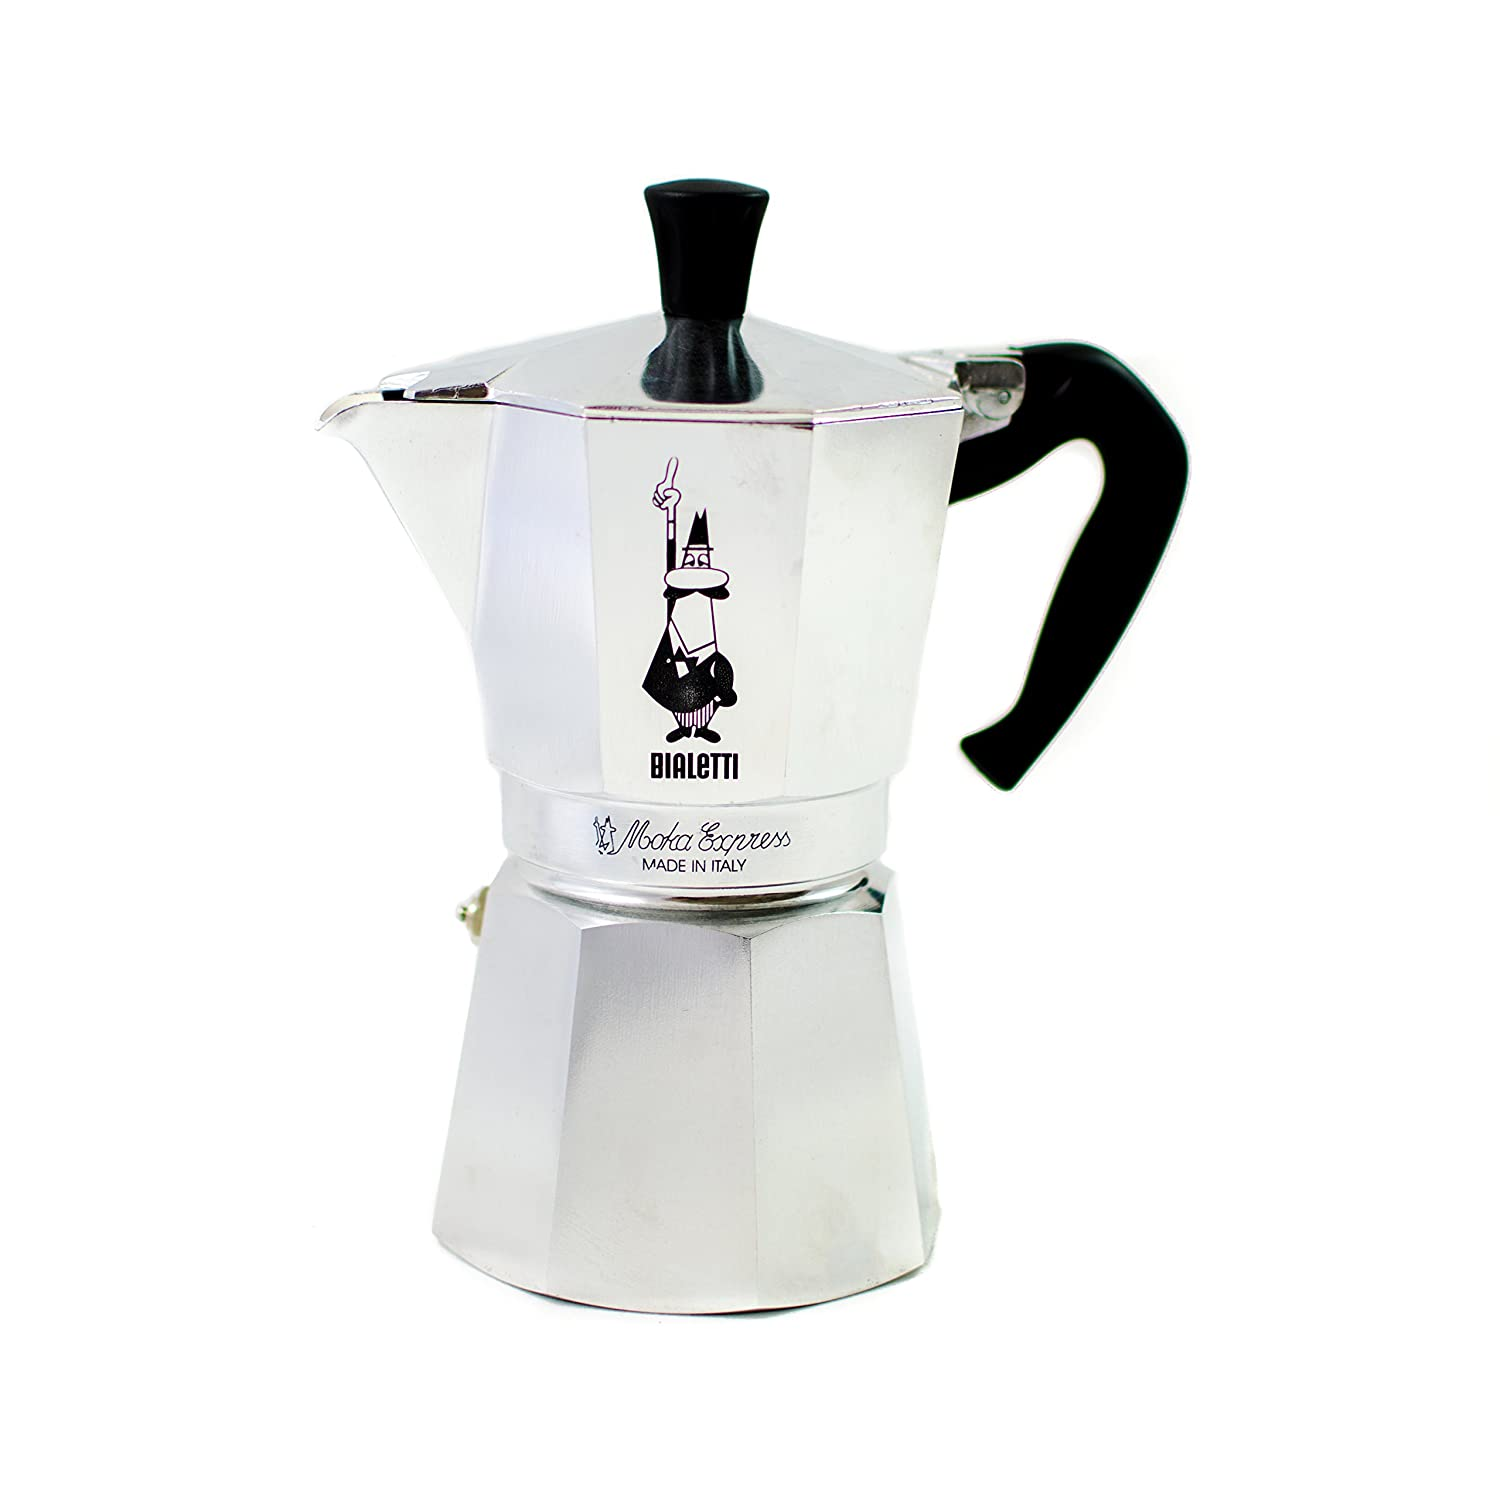 bialetti moka express espresso maker 6 cup kitchen